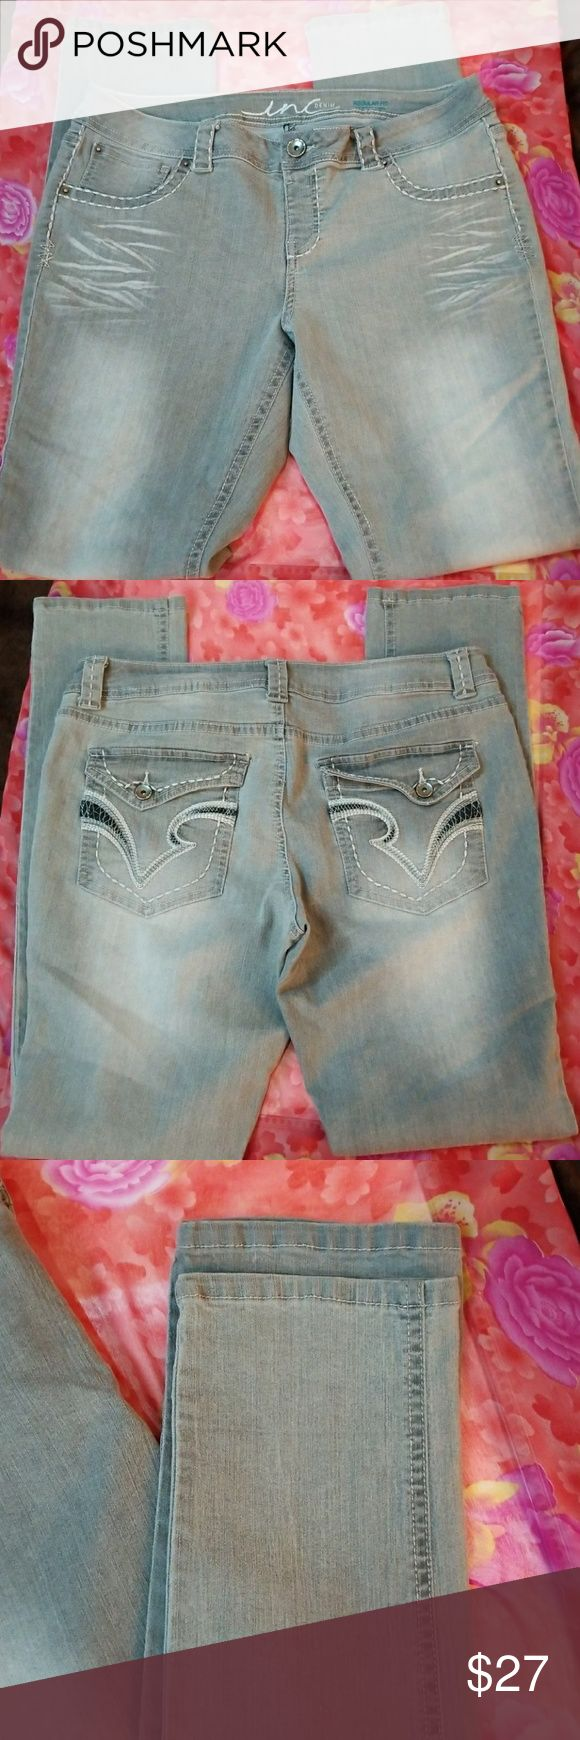 ♀️NWOT INC International Concepts Denim Jeggings♀️ Gray INC International Concepts Denim Jeggings Regular Fit Skinny Leg. Actual Measurements; Waist 32, Inseam 32, Outseam 40.5, Front Rise 9, Back Rise 15, Hips 40, Knee 14, Leg Opening 13. INC International Concepts Jeans Skinny